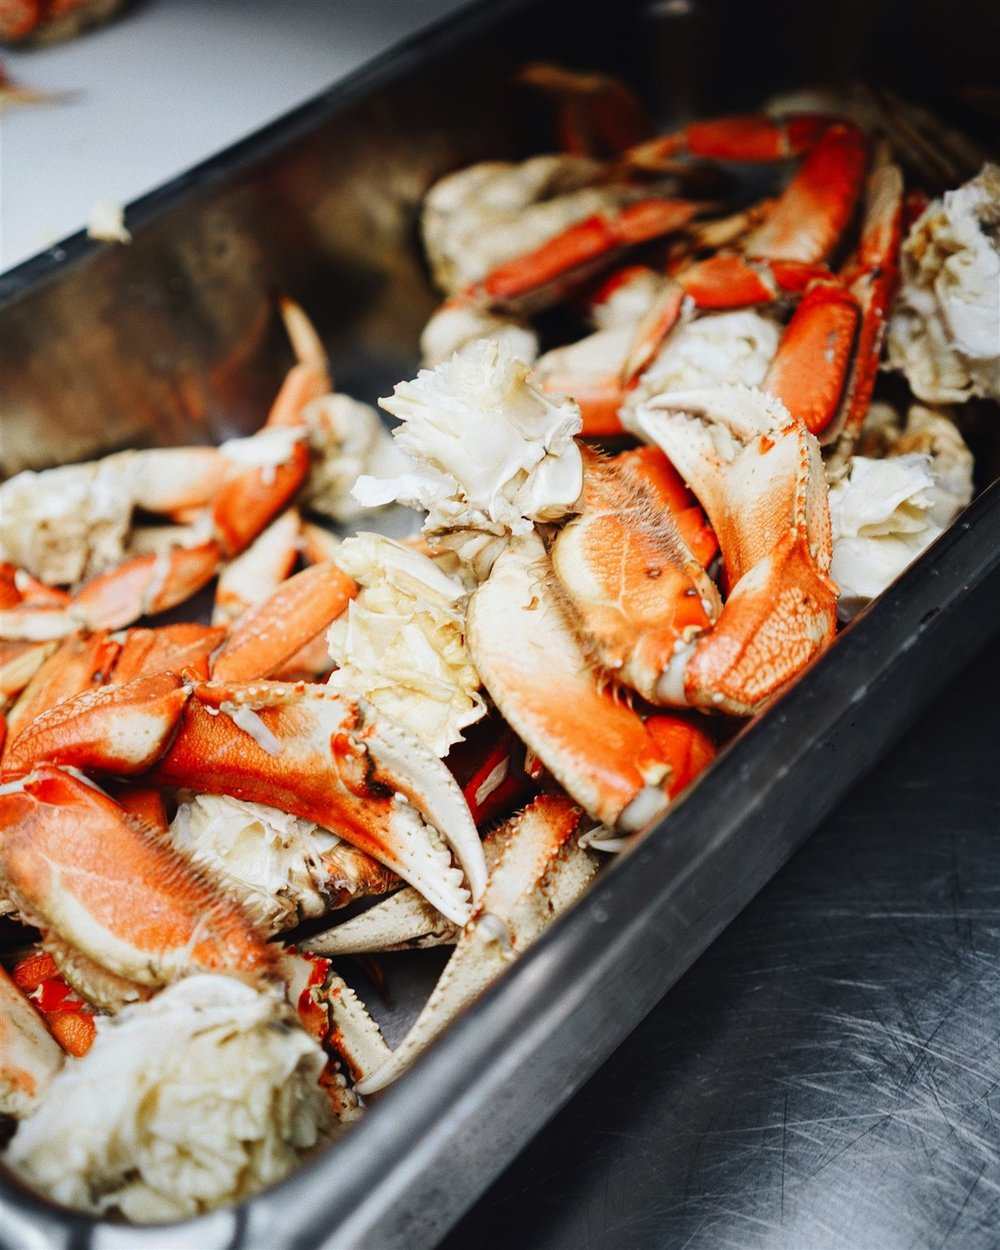 Premium crab, lobster and other select seafoods are regular features on the top fine dining menus in South Lake Tahoe and Stateline.   Marie France Latour    |    Unsplash